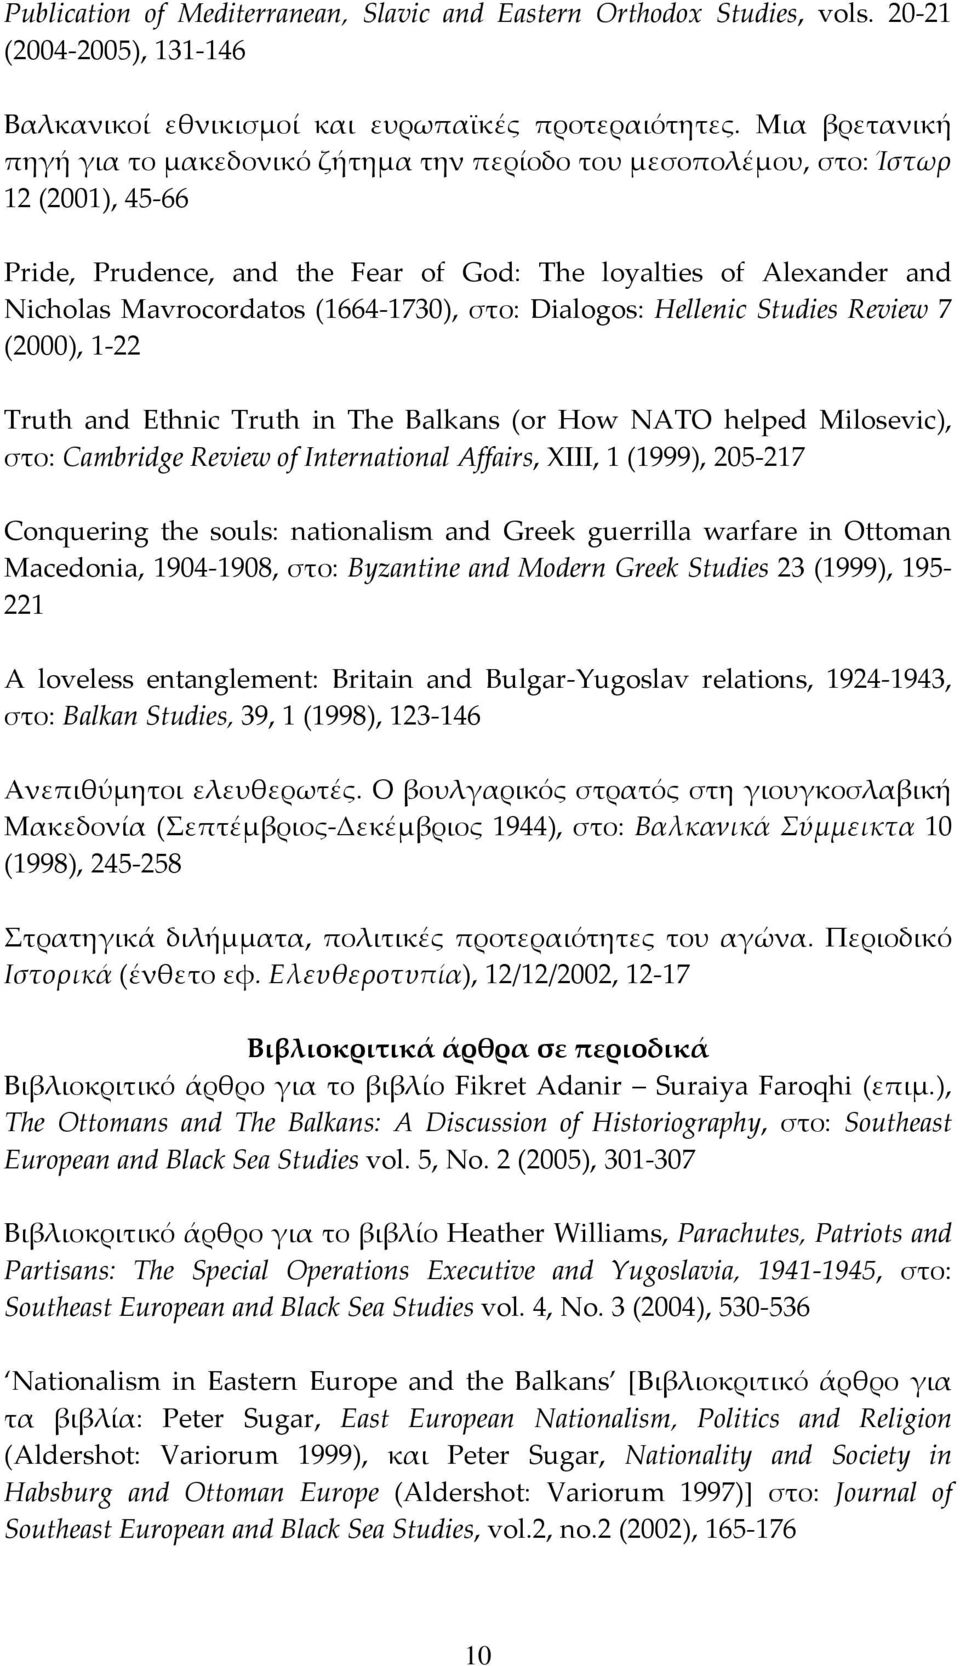 1730), στο: Dialogos: Hellenic Studies Review 7 (2000), 1 22 Truth and Ethnic Truth in The Balkans (or How NATO helped Milosevic), στο: Cambridge Review of International Affairs, XIII, 1 (1999), 205